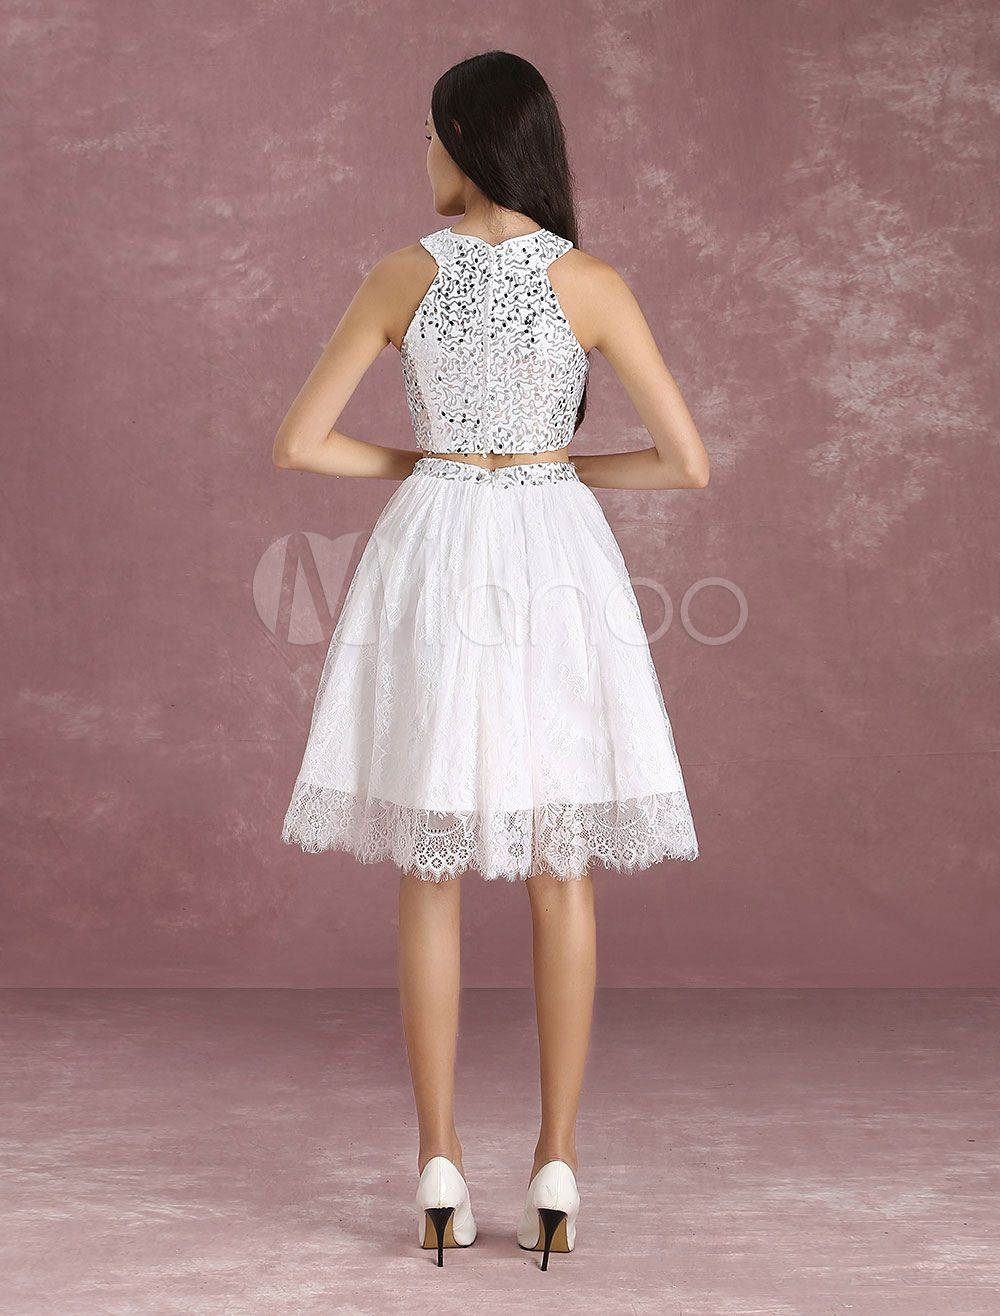 affb3cef4 Two Piece Homecoming Dress Ivory Lace Short Prom Dress Crop Top Sequin A  Line Knee Length Graduation Dress #Lace, #Short, #Prom